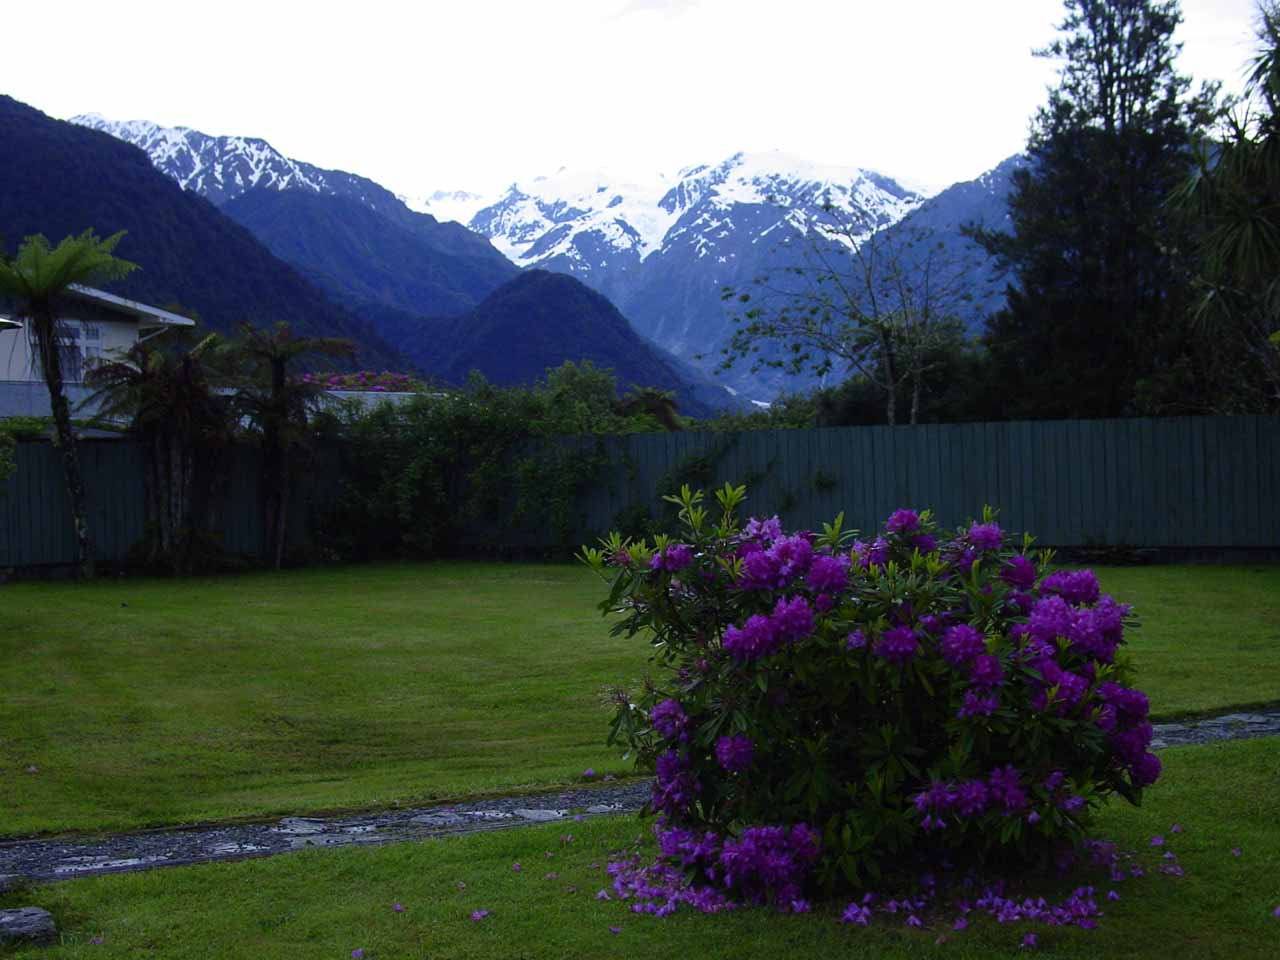 The view from our so-called Glacier View Motel in Franz Josef